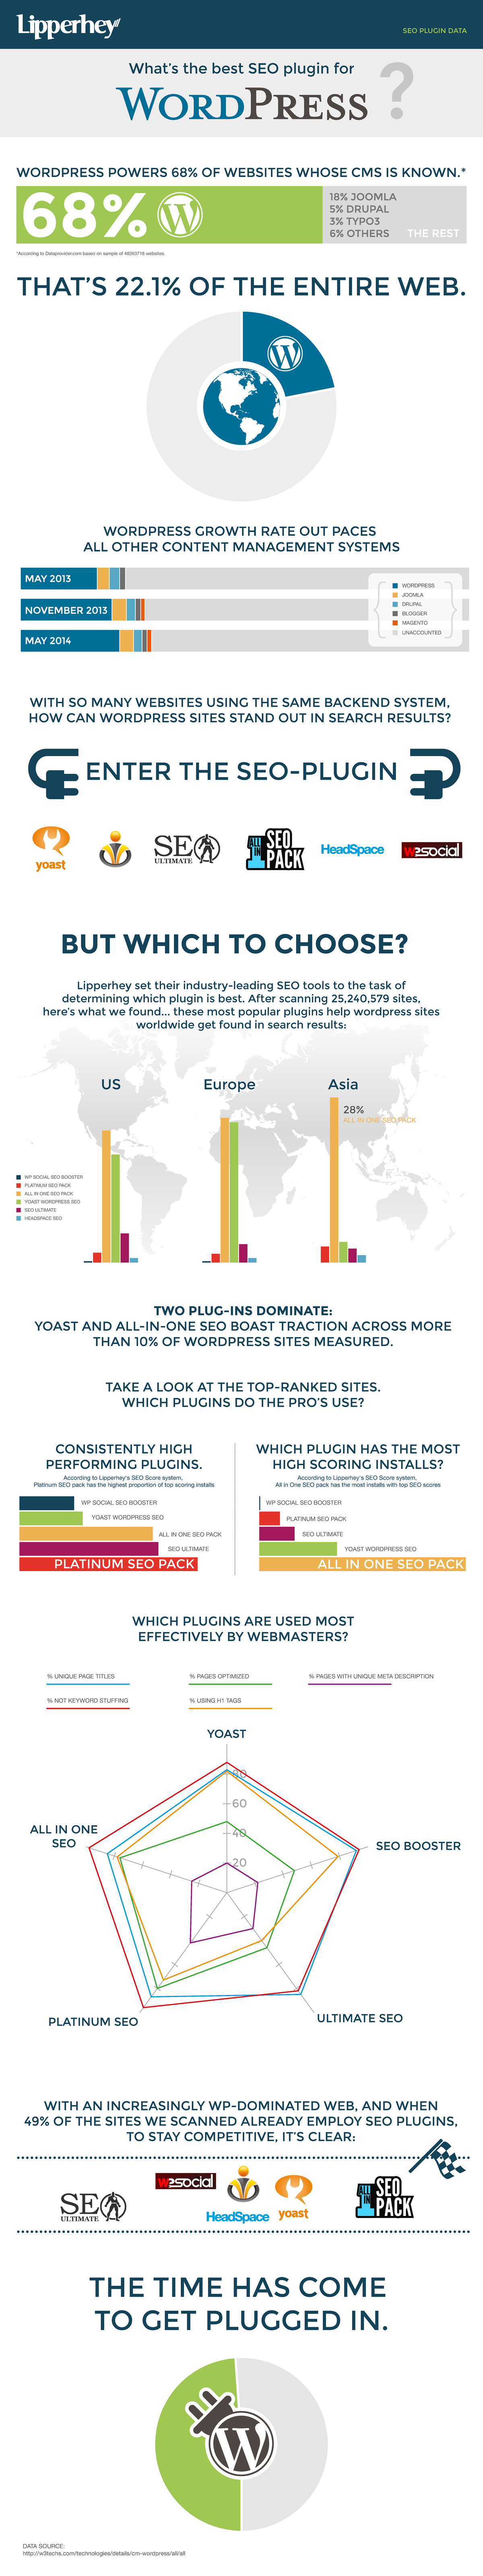 Wordpress Plugin Lipperhey Infographic